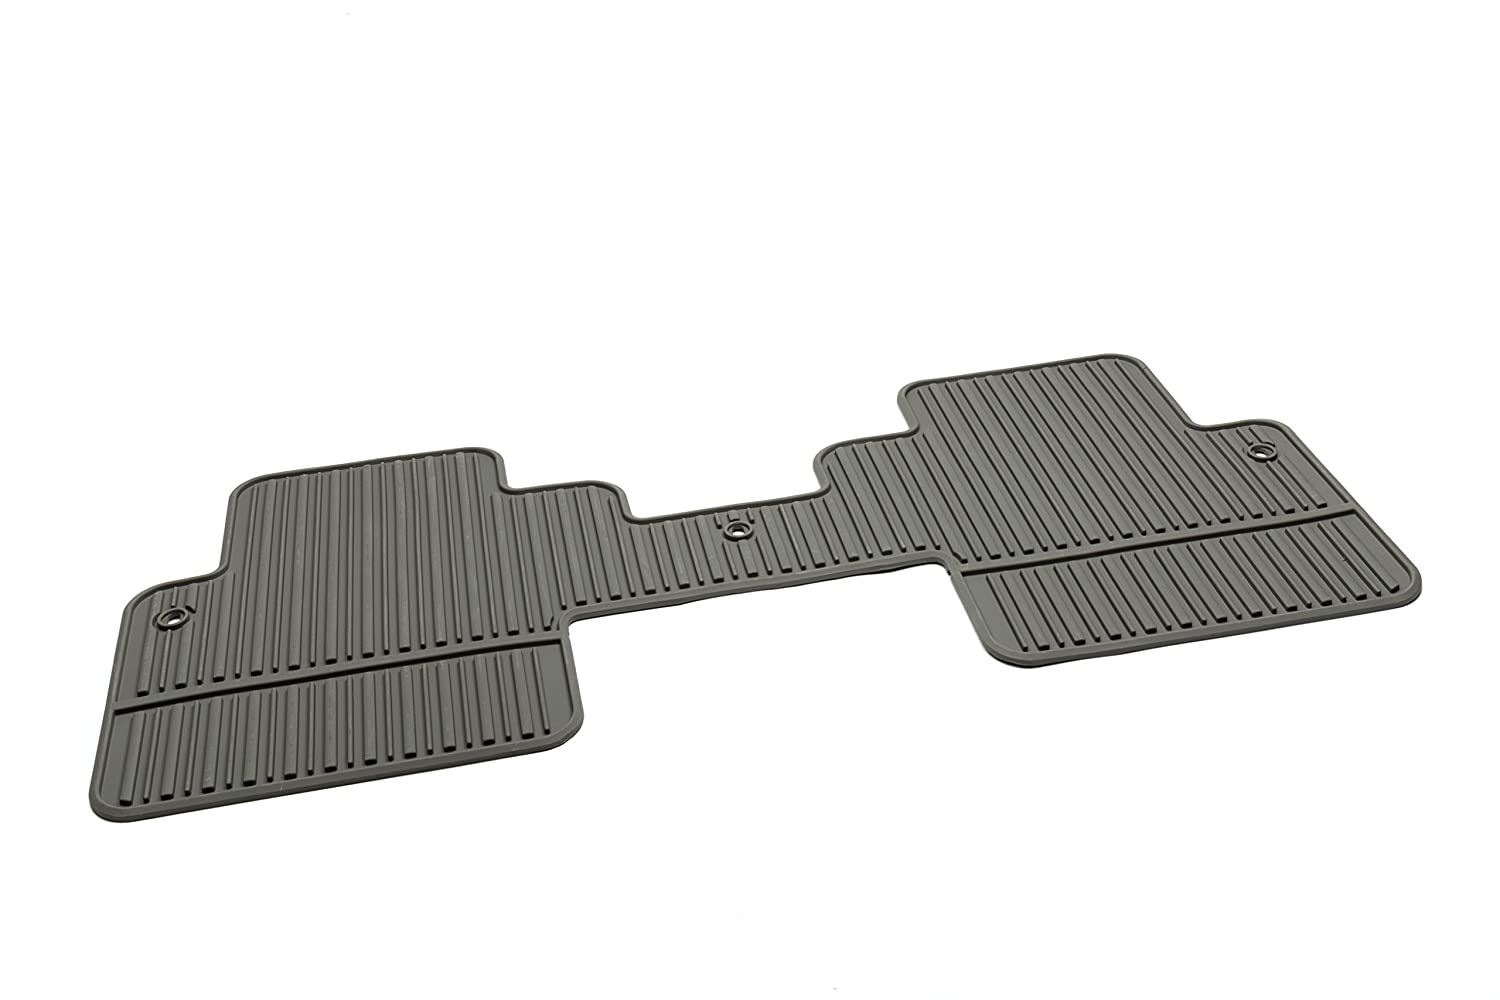 GM Accessories 22890474 Second Row 1-Piece All-Weather Floor Mat in Ebony with Diamond Pattern